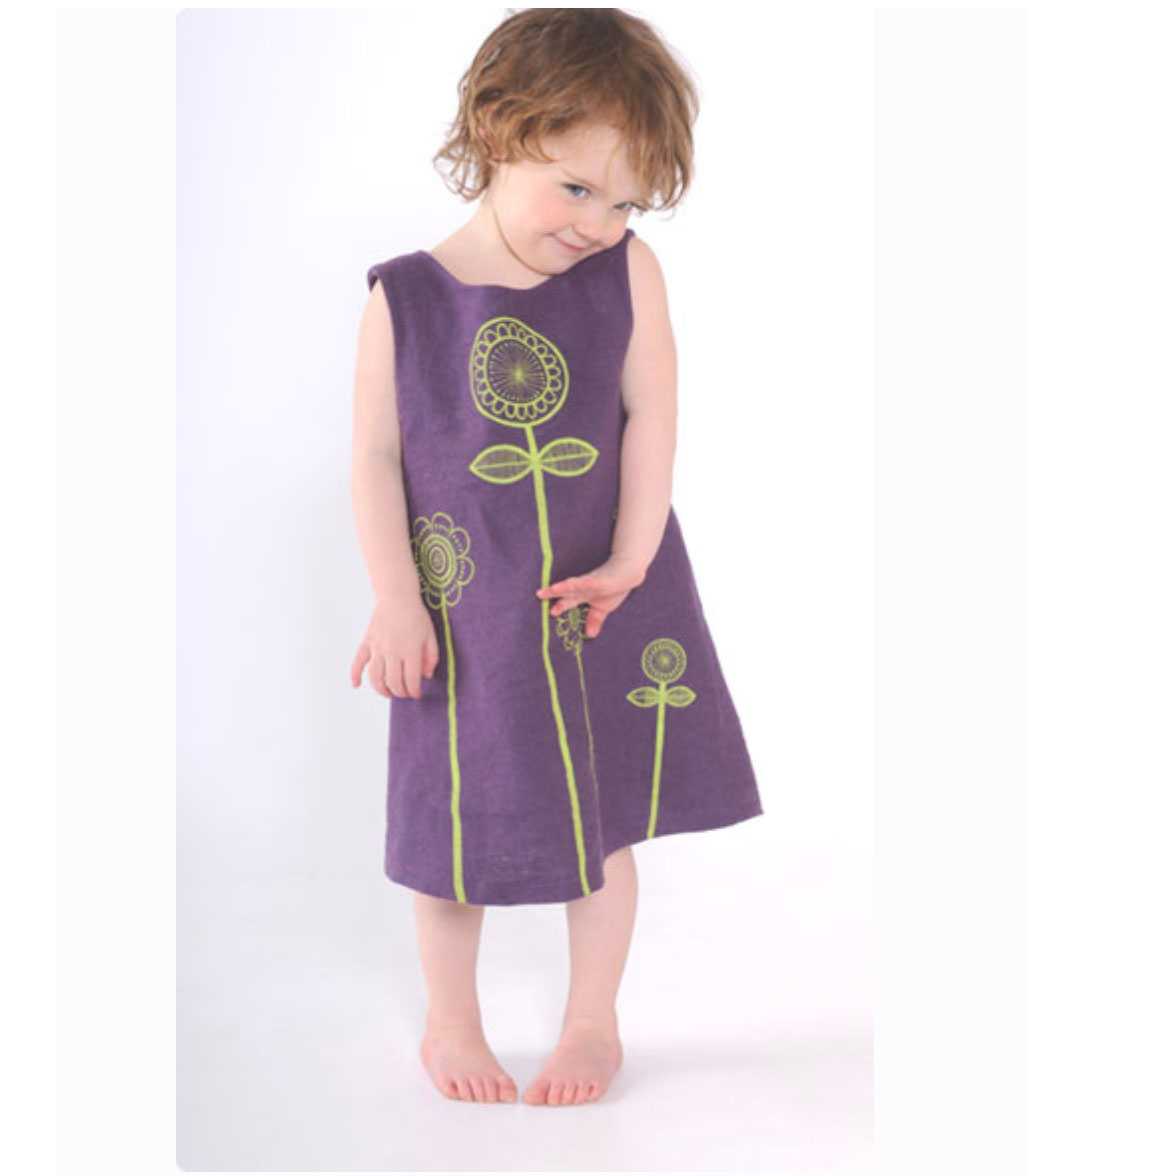 Clothkits DIY dress Peekaboo Sunflower 1-6 year